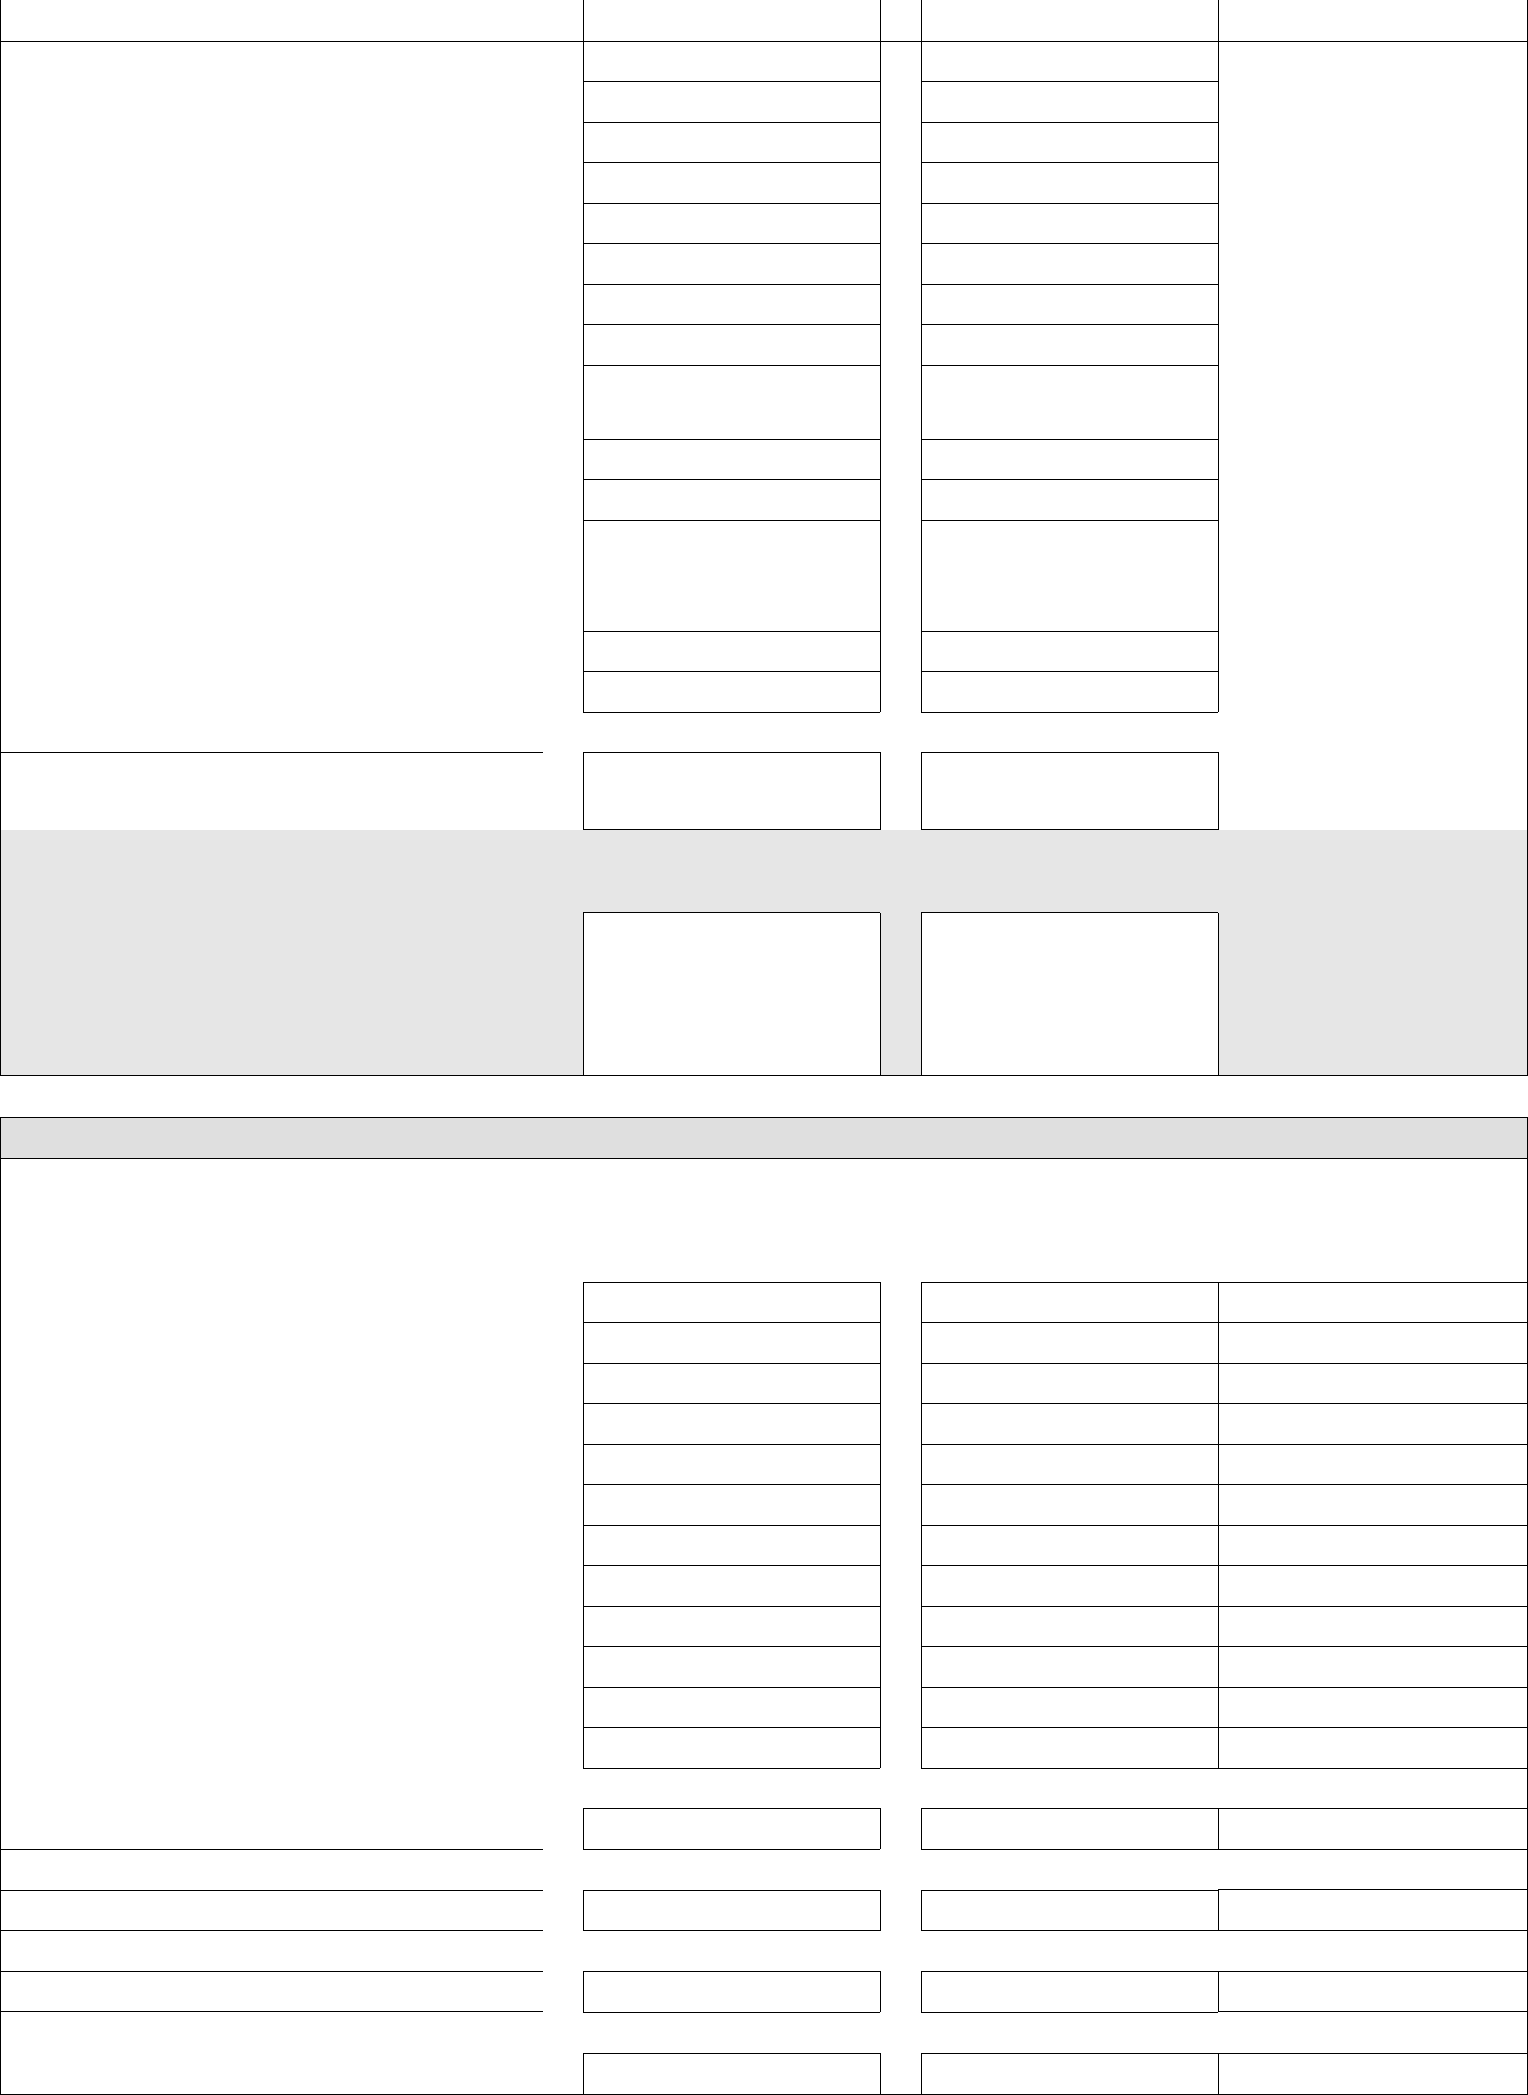 Cvs mileage sheet autos post for Investor term sheet template